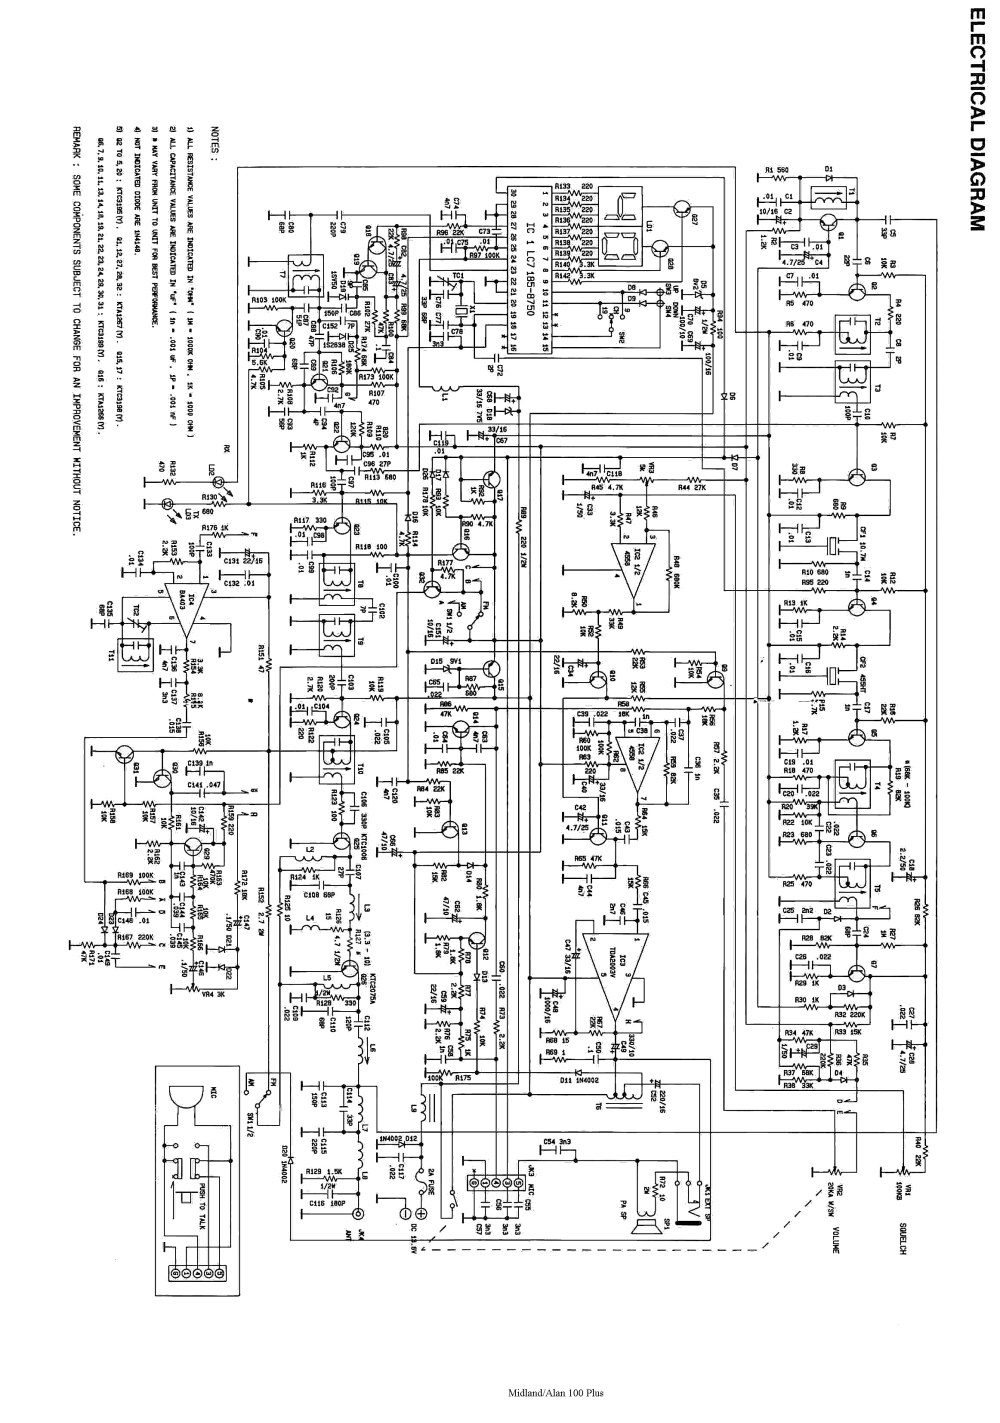 medium resolution of rigpix database schematics manuals n stuff international 4700 wiring diagram 2001 4700 international engine diagram